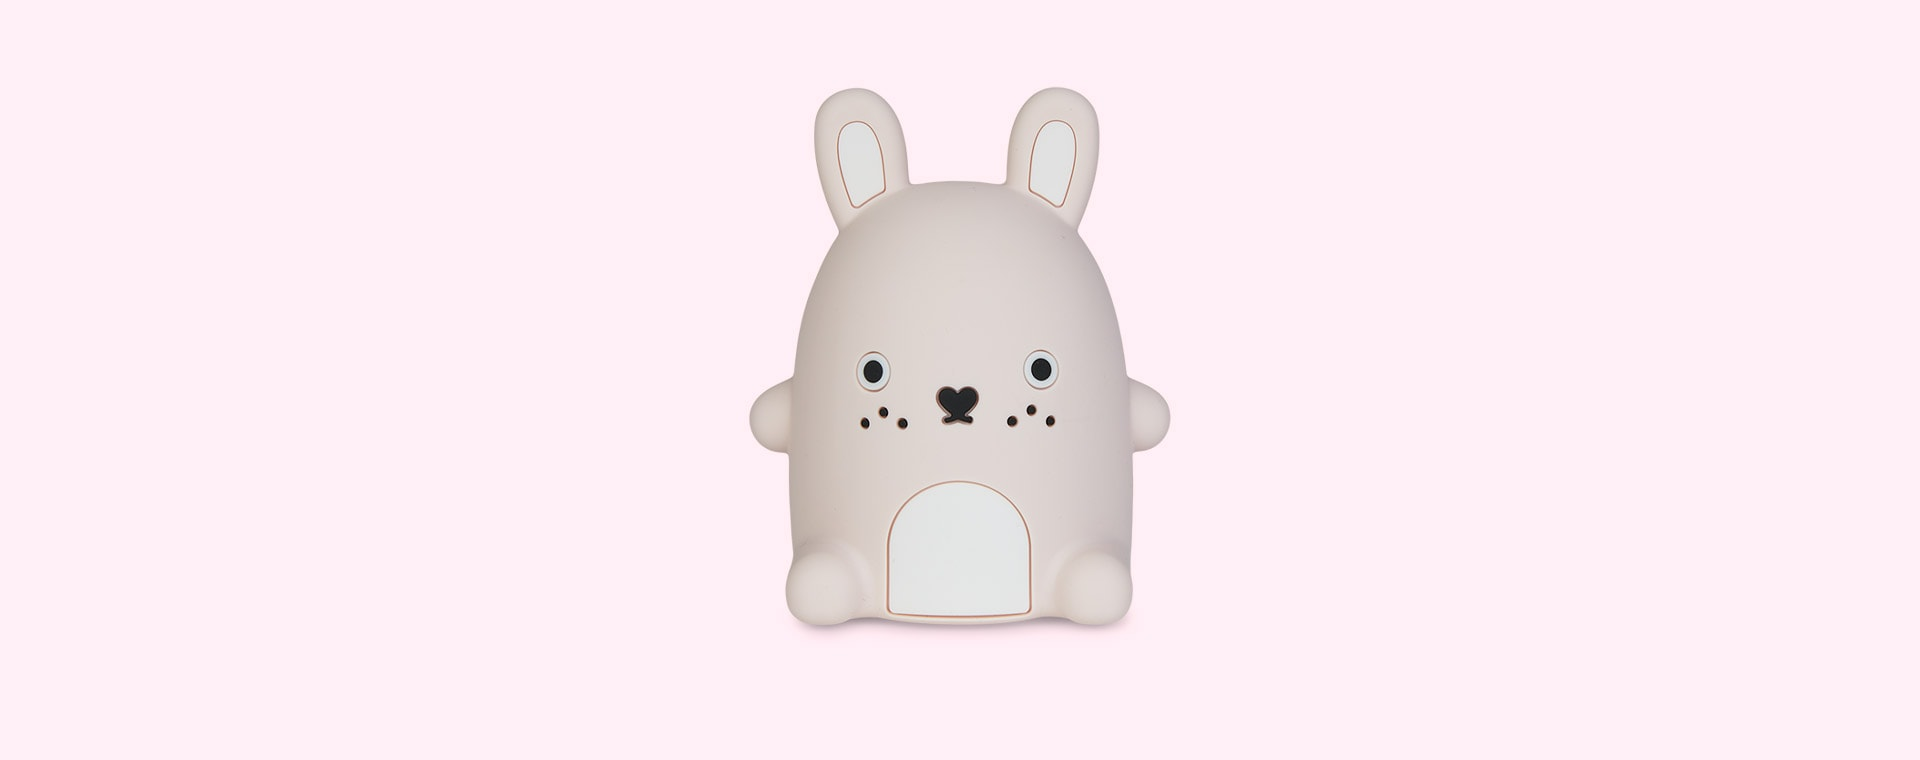 Pastel Pink Ricecarrot Noodoll Silicone Night Light